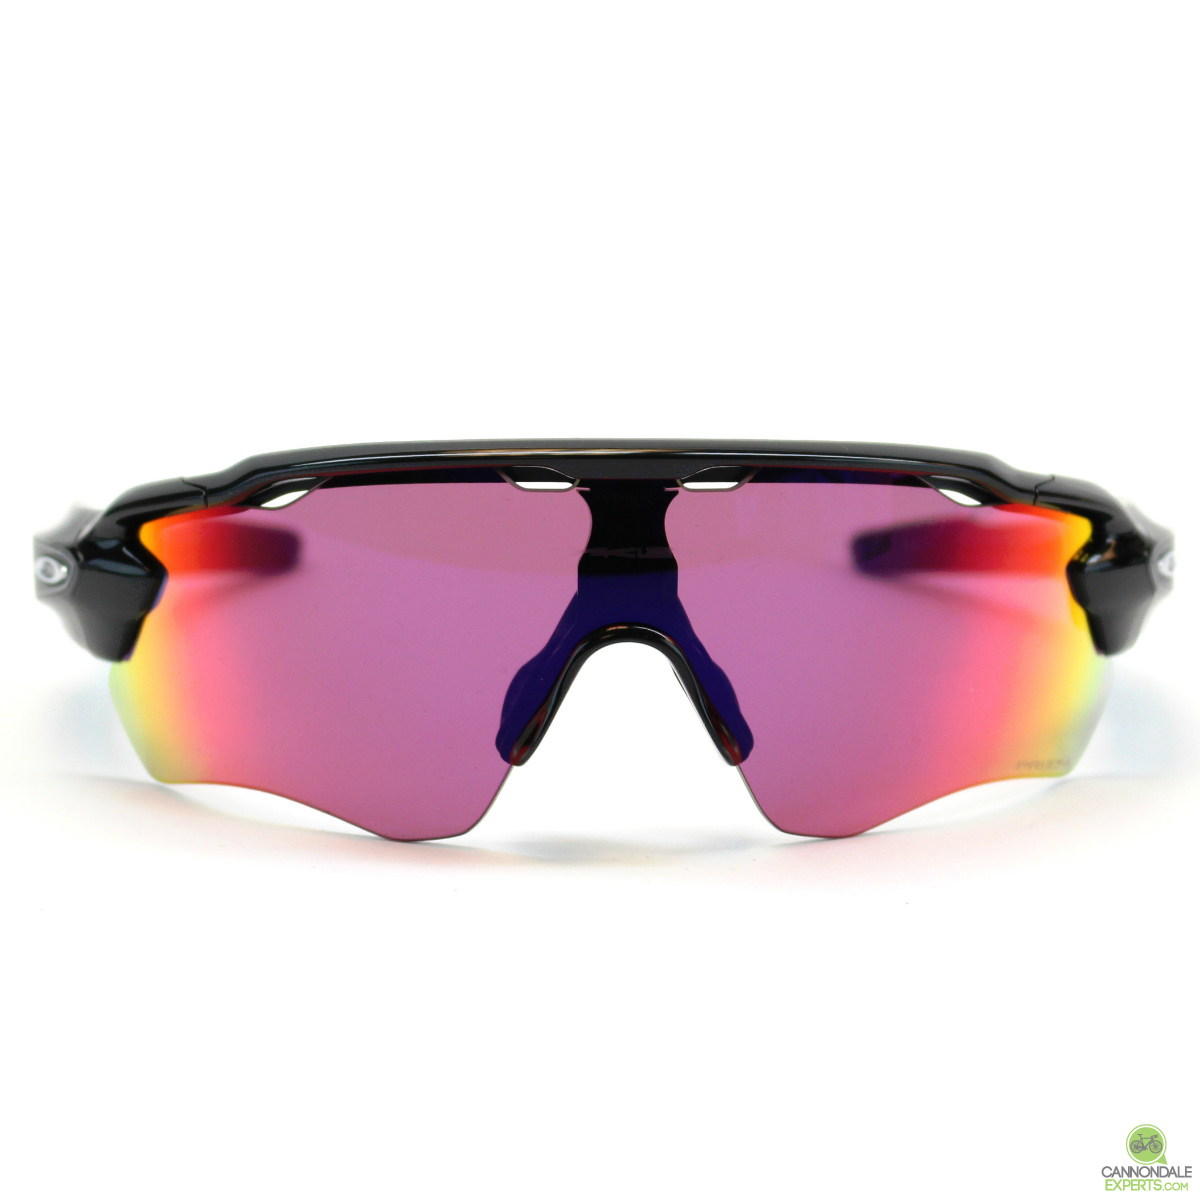 cccb9db188 Oakley Radar Pace Polished Black w  Prizm Road and Clear Lenses 93137